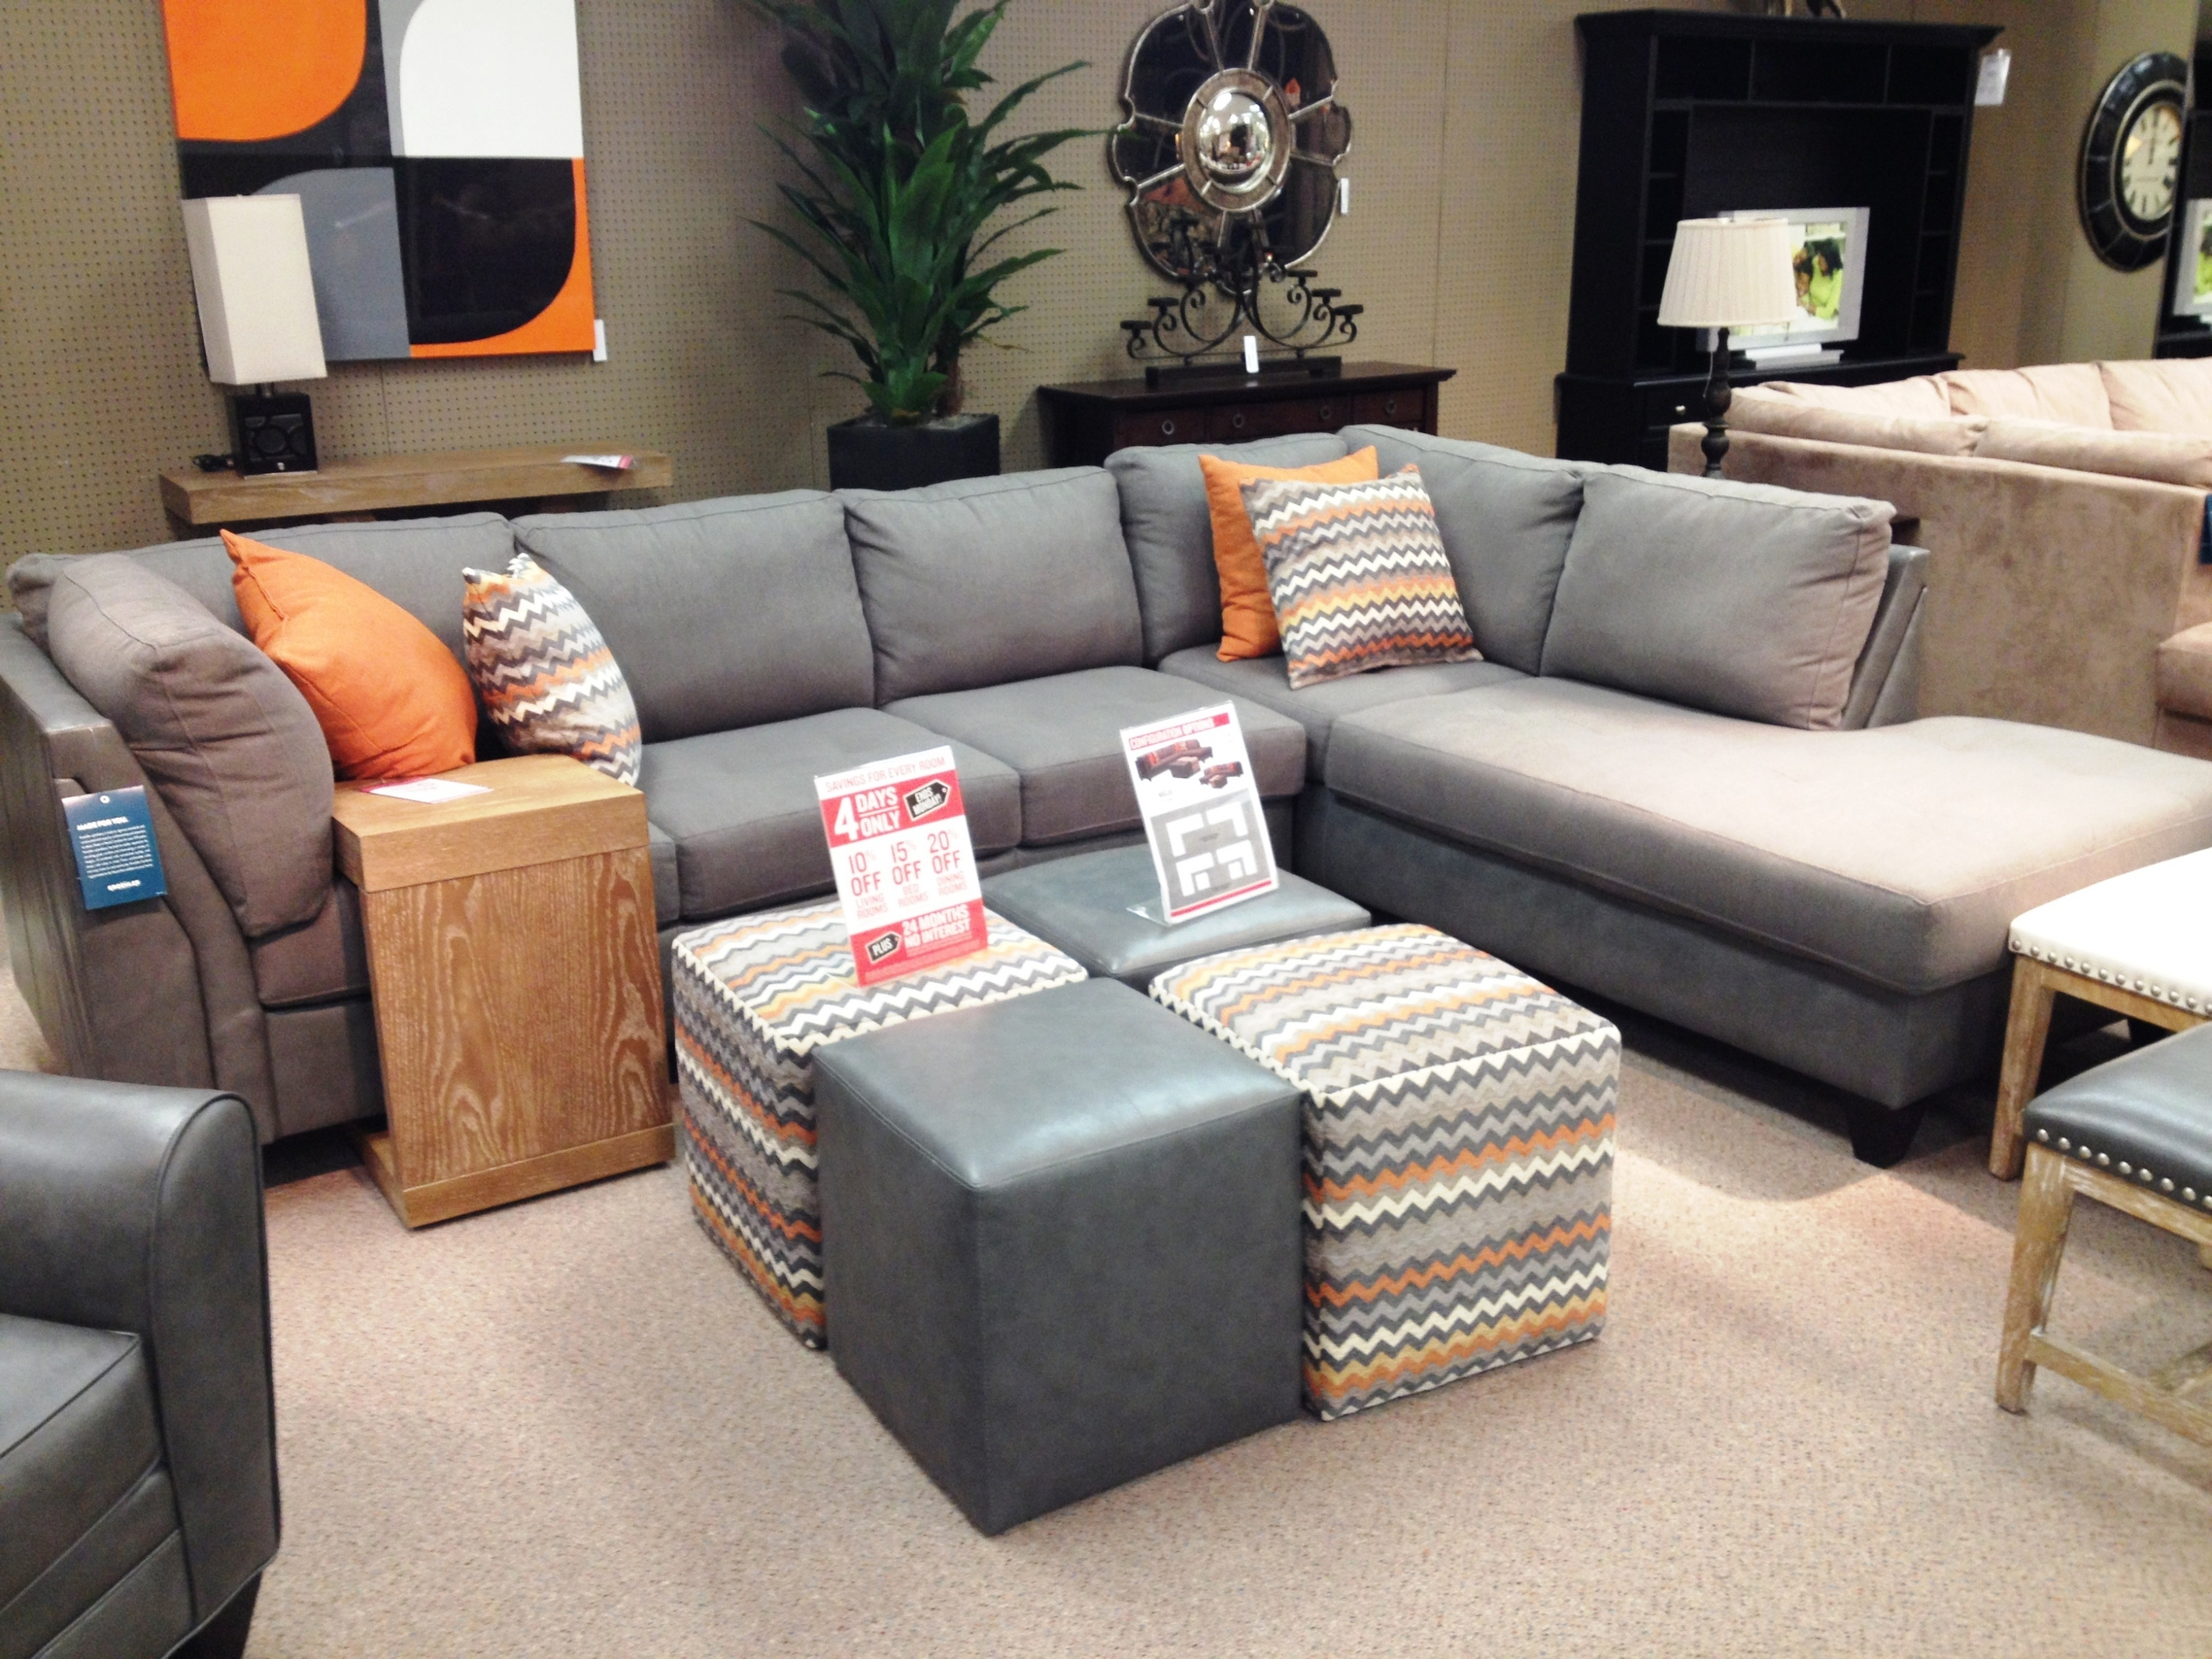 Sofa: The Sectional Sofa Saga | Mid Century Modern(Ization) Within Throughout Macys Sectional Sofas (View 3 of 10)